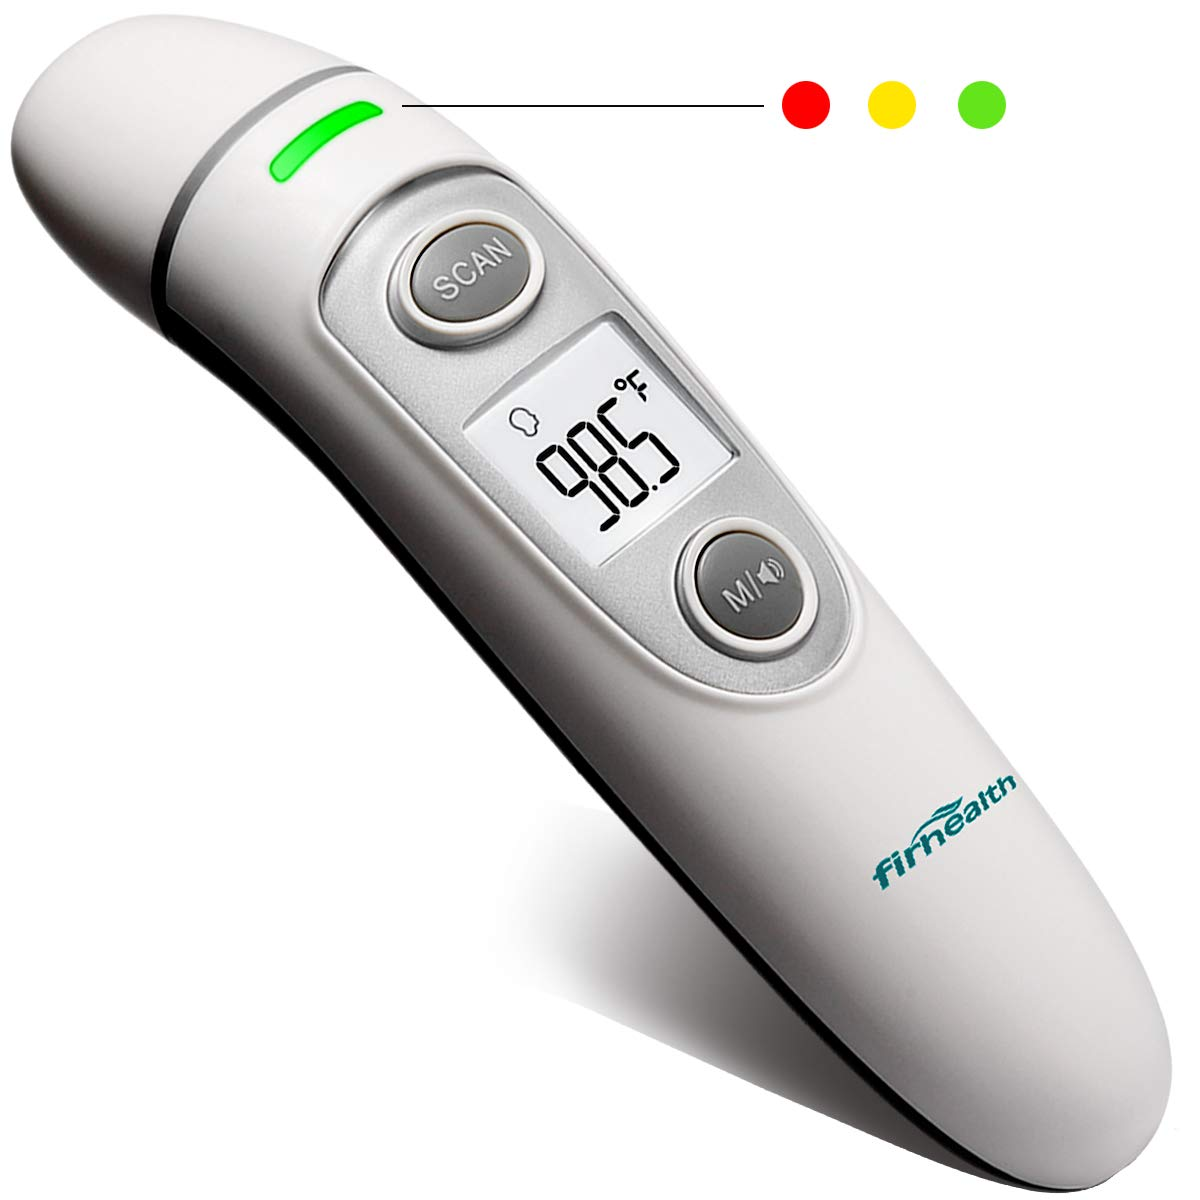 Digital Infrared Baby Thermometer, Firhealth Ear Forehead Object Room Professional 4 in 1, Accurate Fever Indicator Instant Read,Suitable for Baby, Adult, Object and Ambient, FDA CE Approved